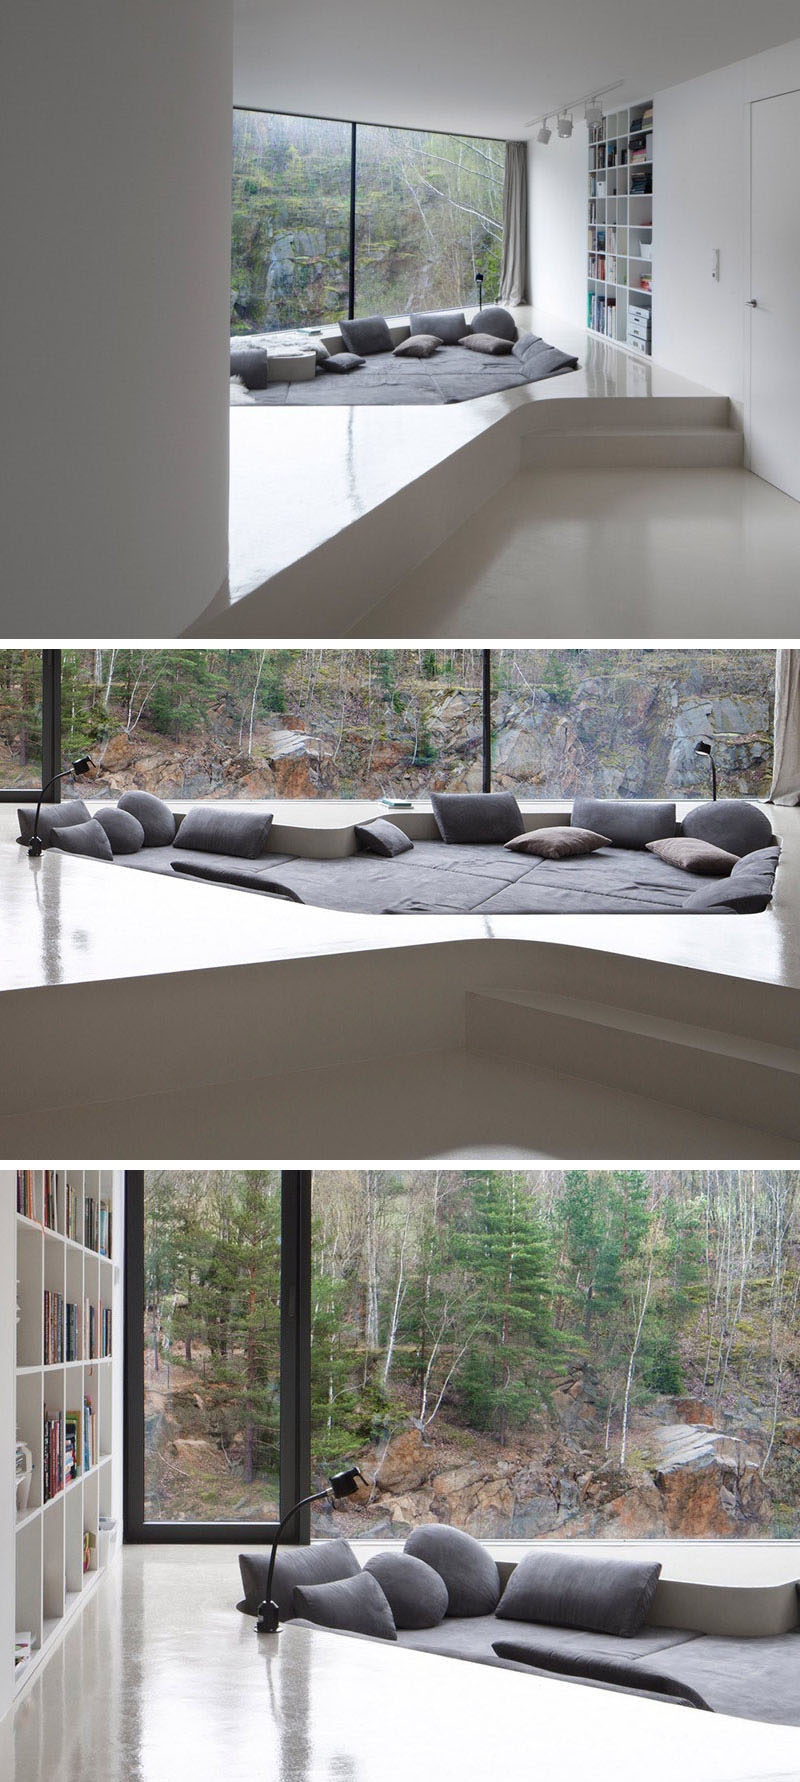 This comfy lounge area has been sunken into a built-up floor